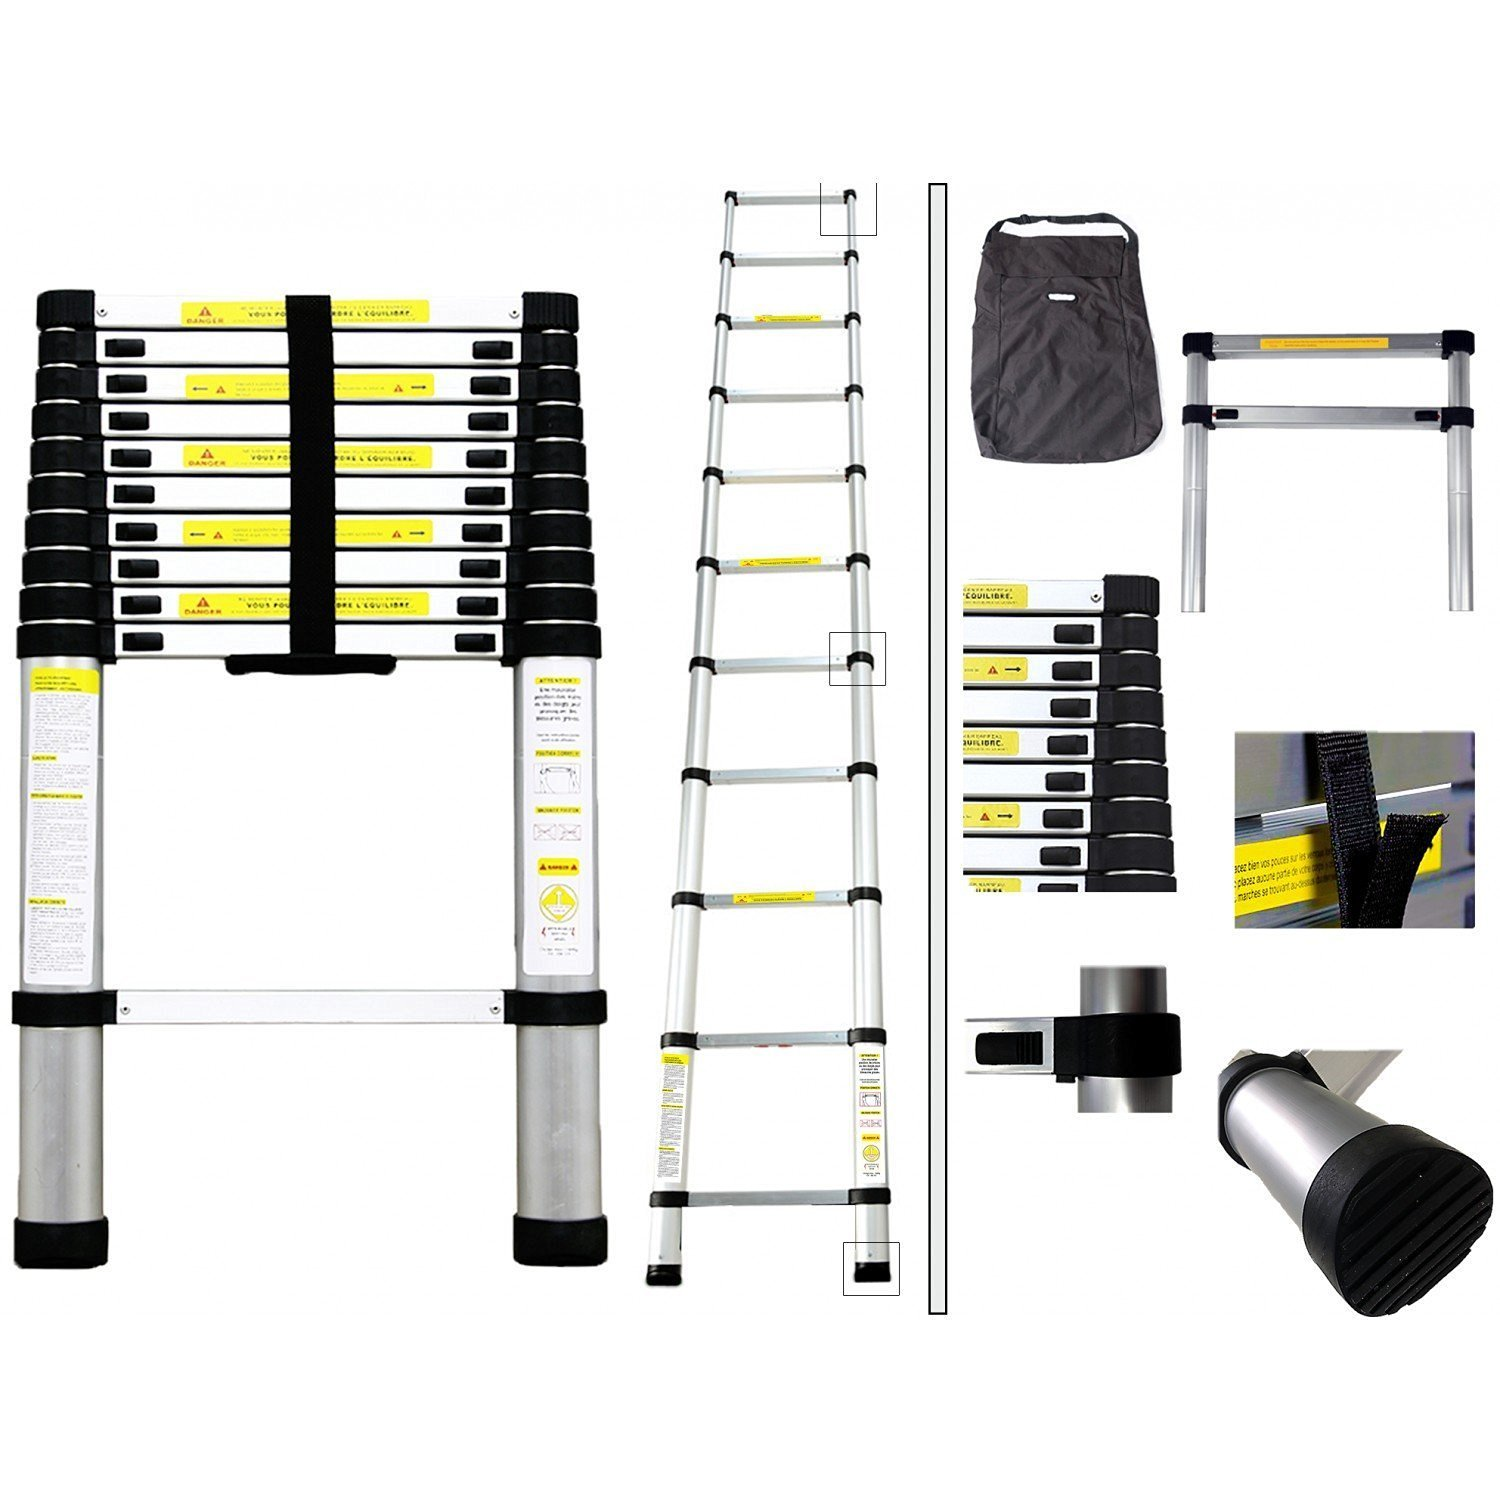 2.6m Double Telescopic Ladder Versatile Foldable Extendable Portable Multipurpose Ladder for All Your DIY Needs SaleemExpress